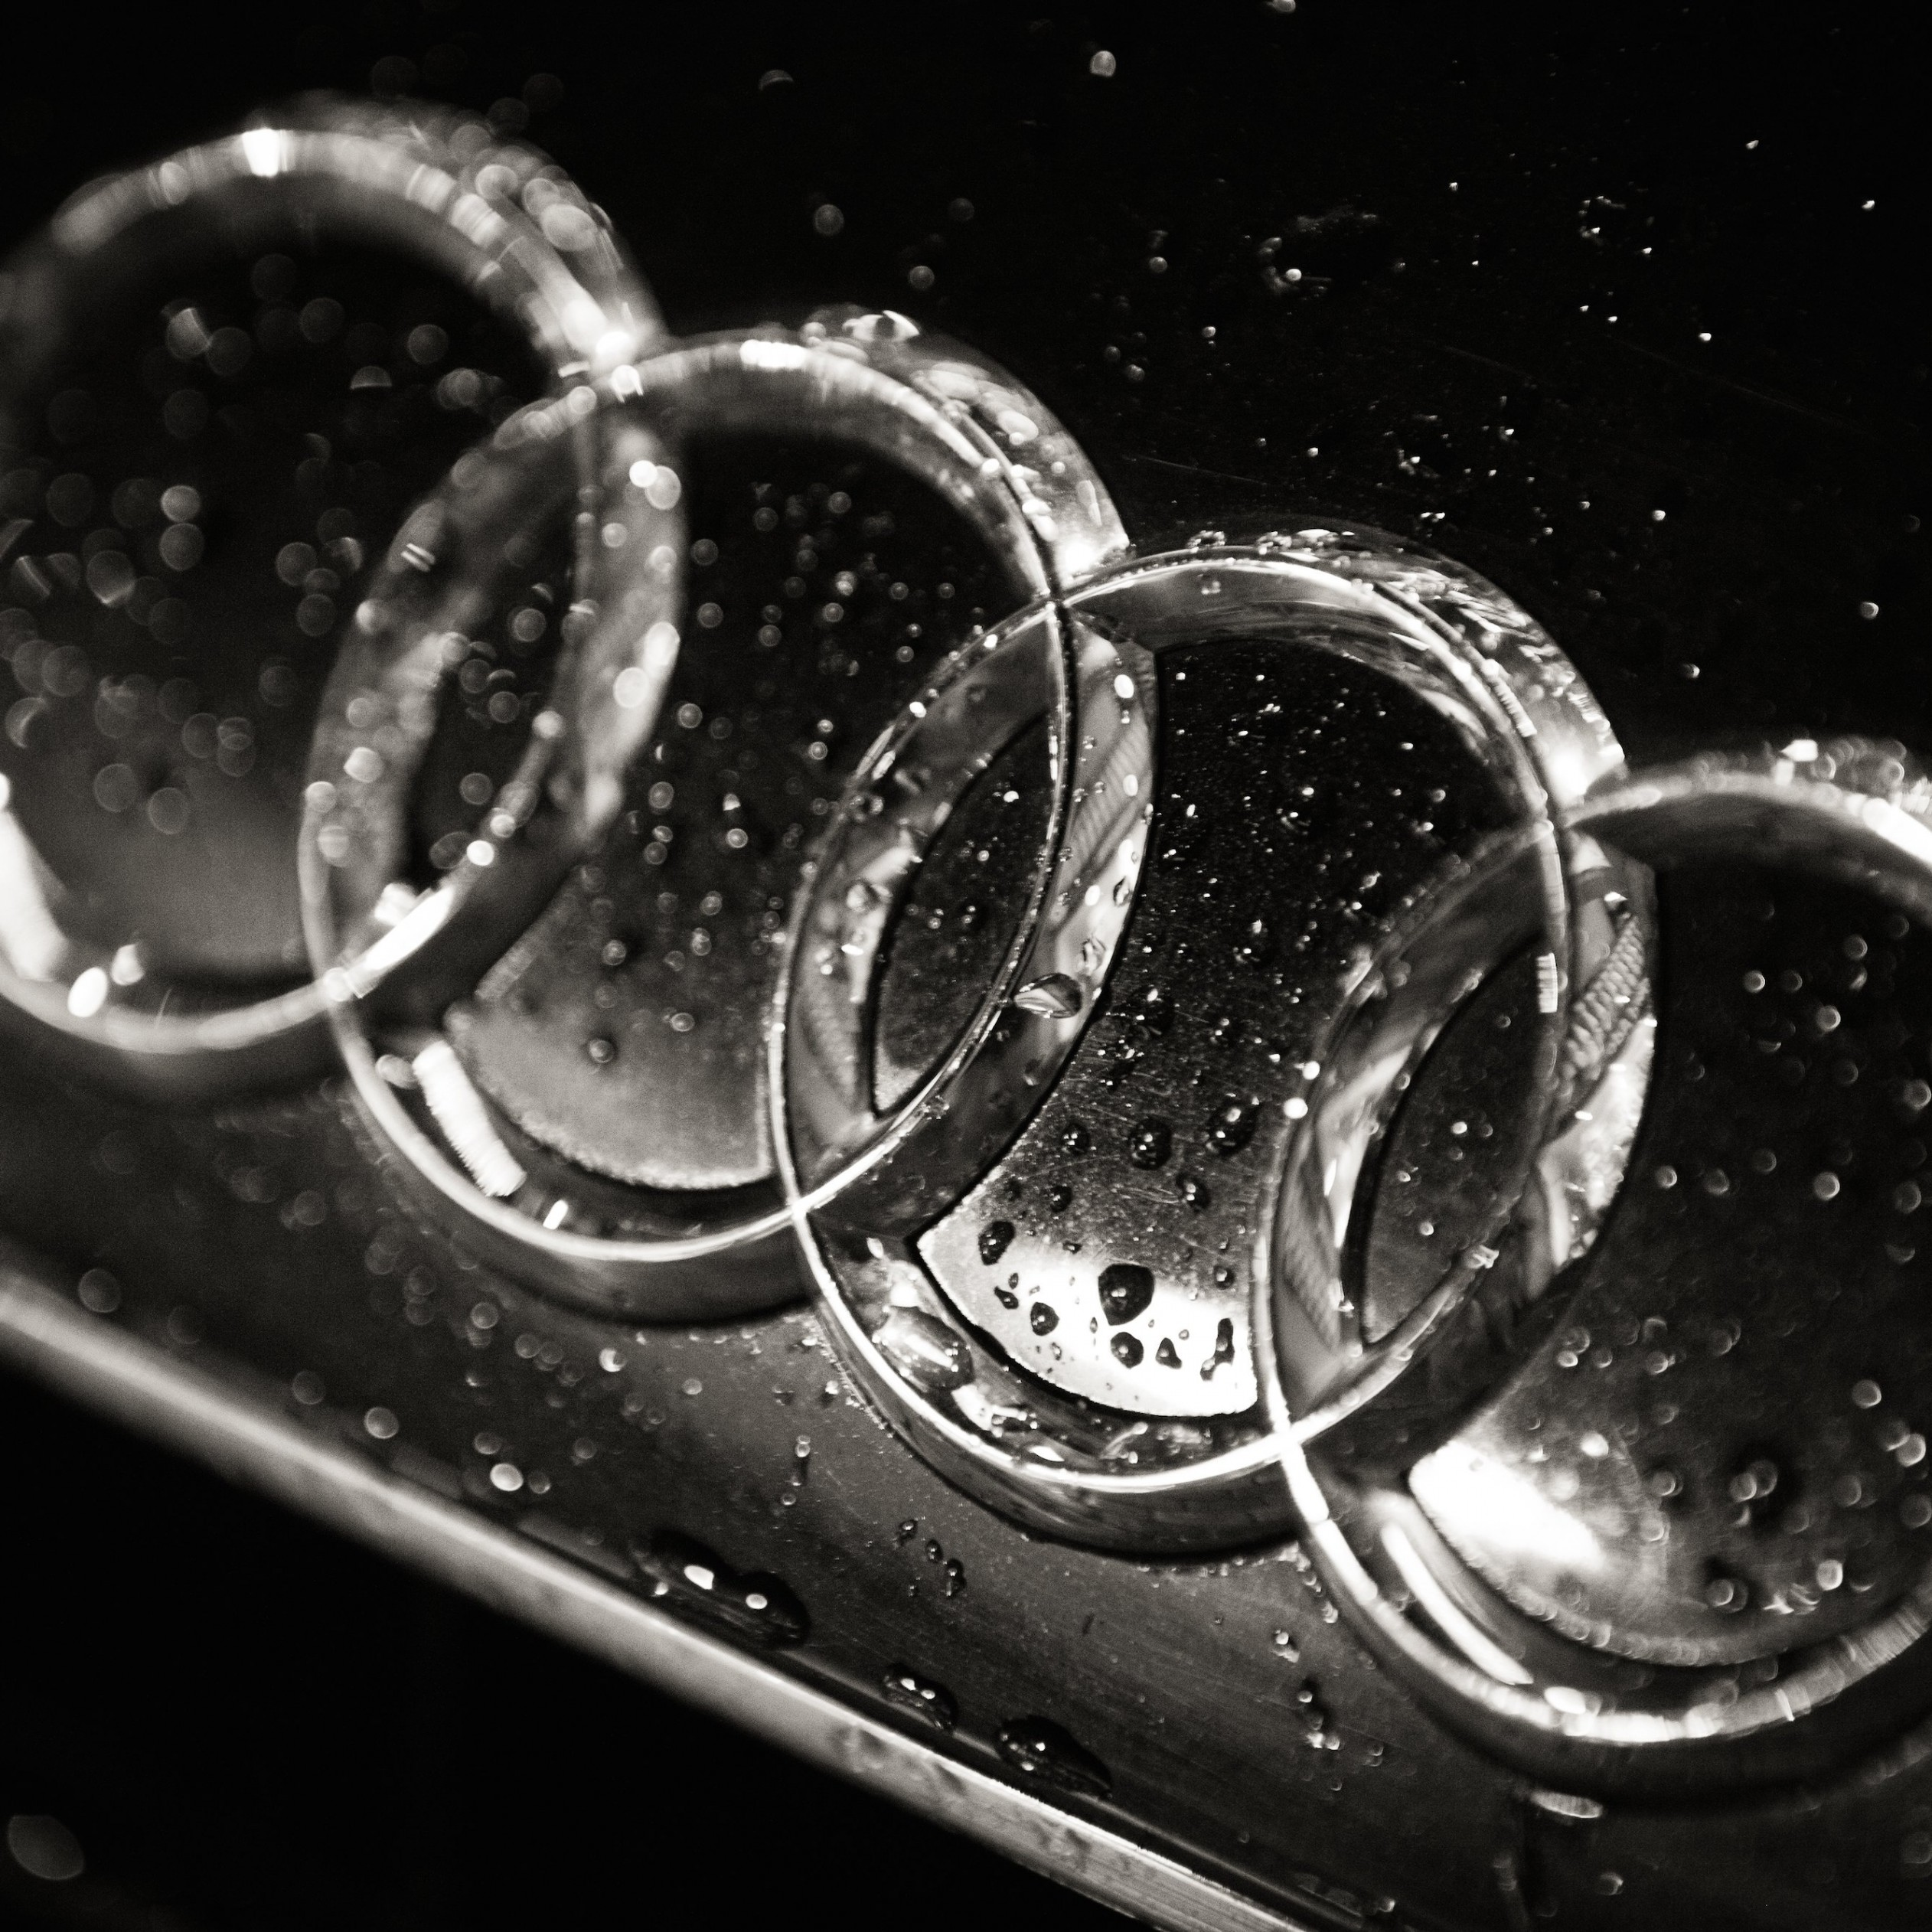 Audi Logo in Black & White Wallpaper for Apple iPad Air